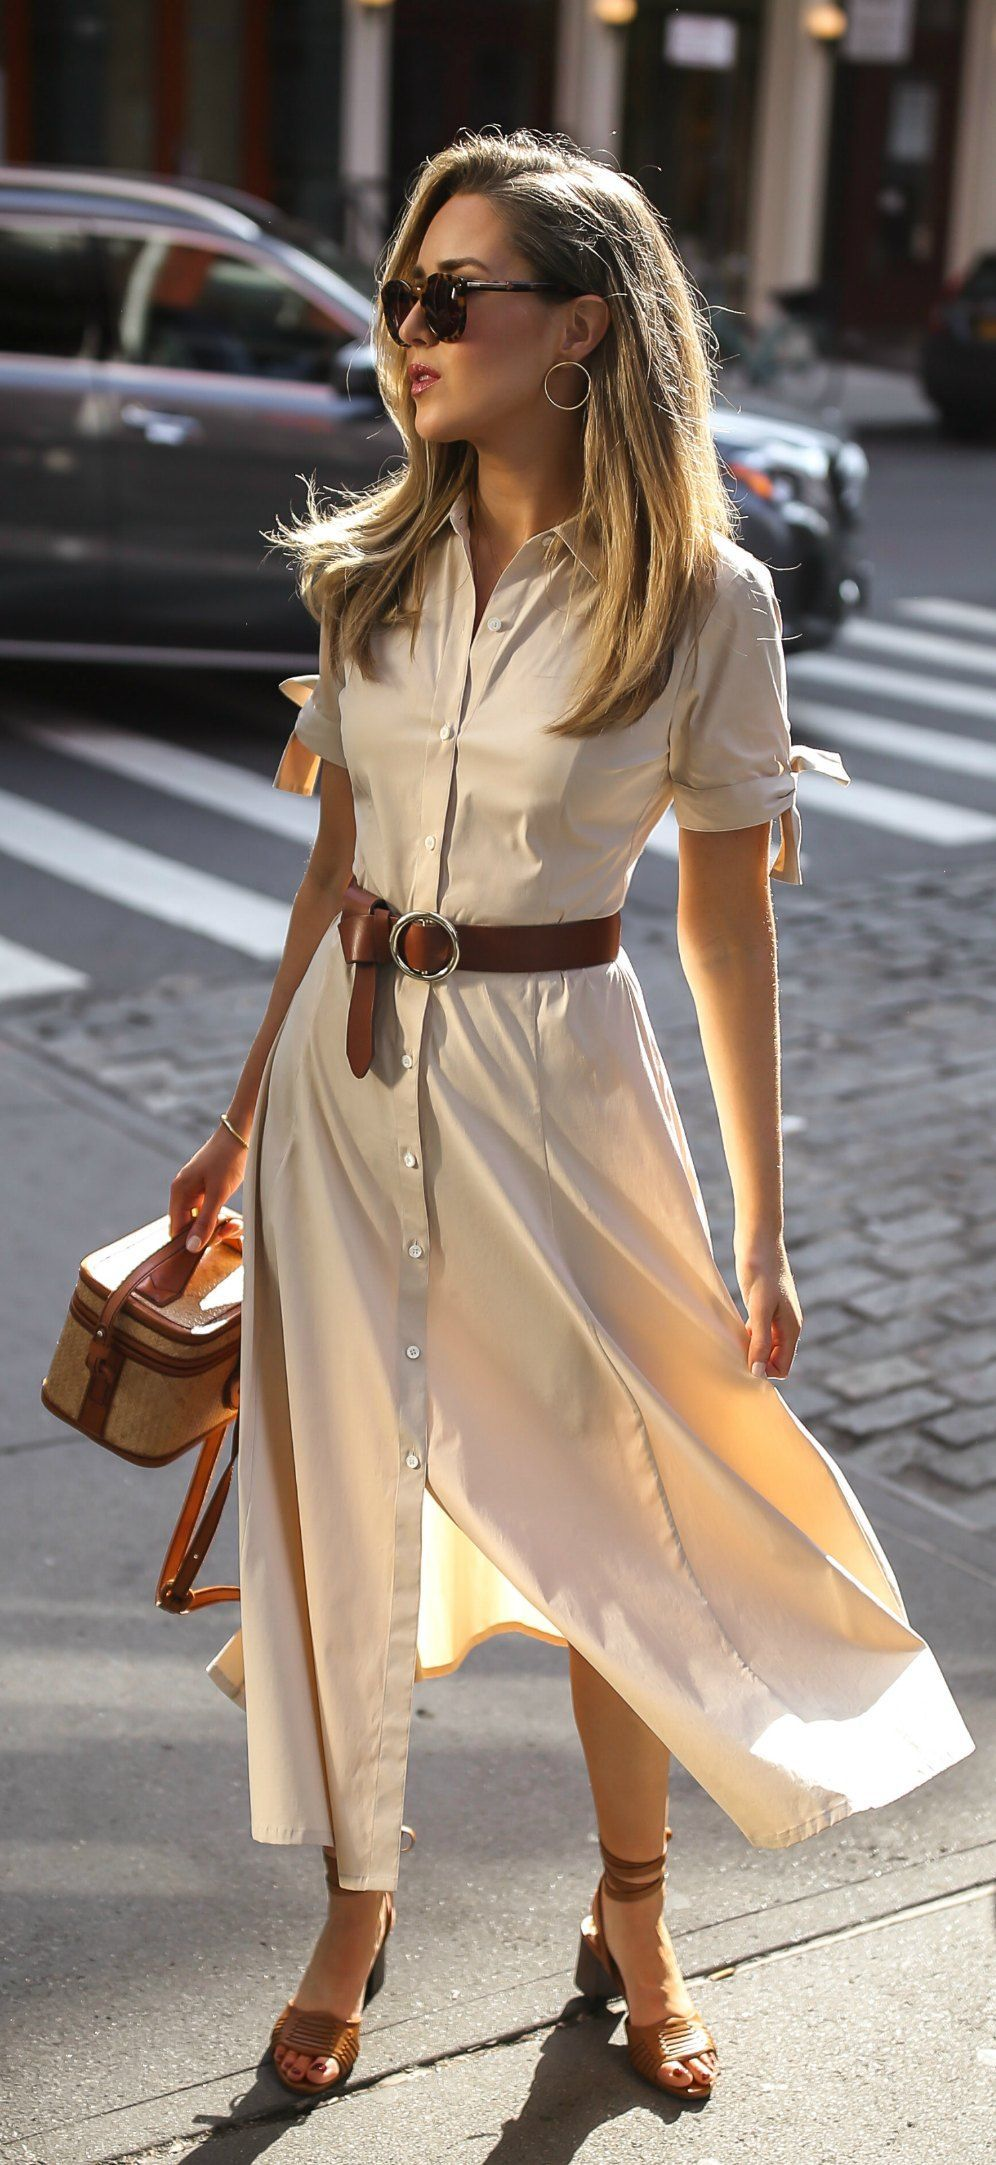 30 Dresses In 30 Days Day 18 Casual Friday Khaki Short Sleeve Button Down Midi Dress Brown Waist Belt Summer Work Outfits Fashion Brown Sandals Outfit [ 2165 x 996 Pixel ]